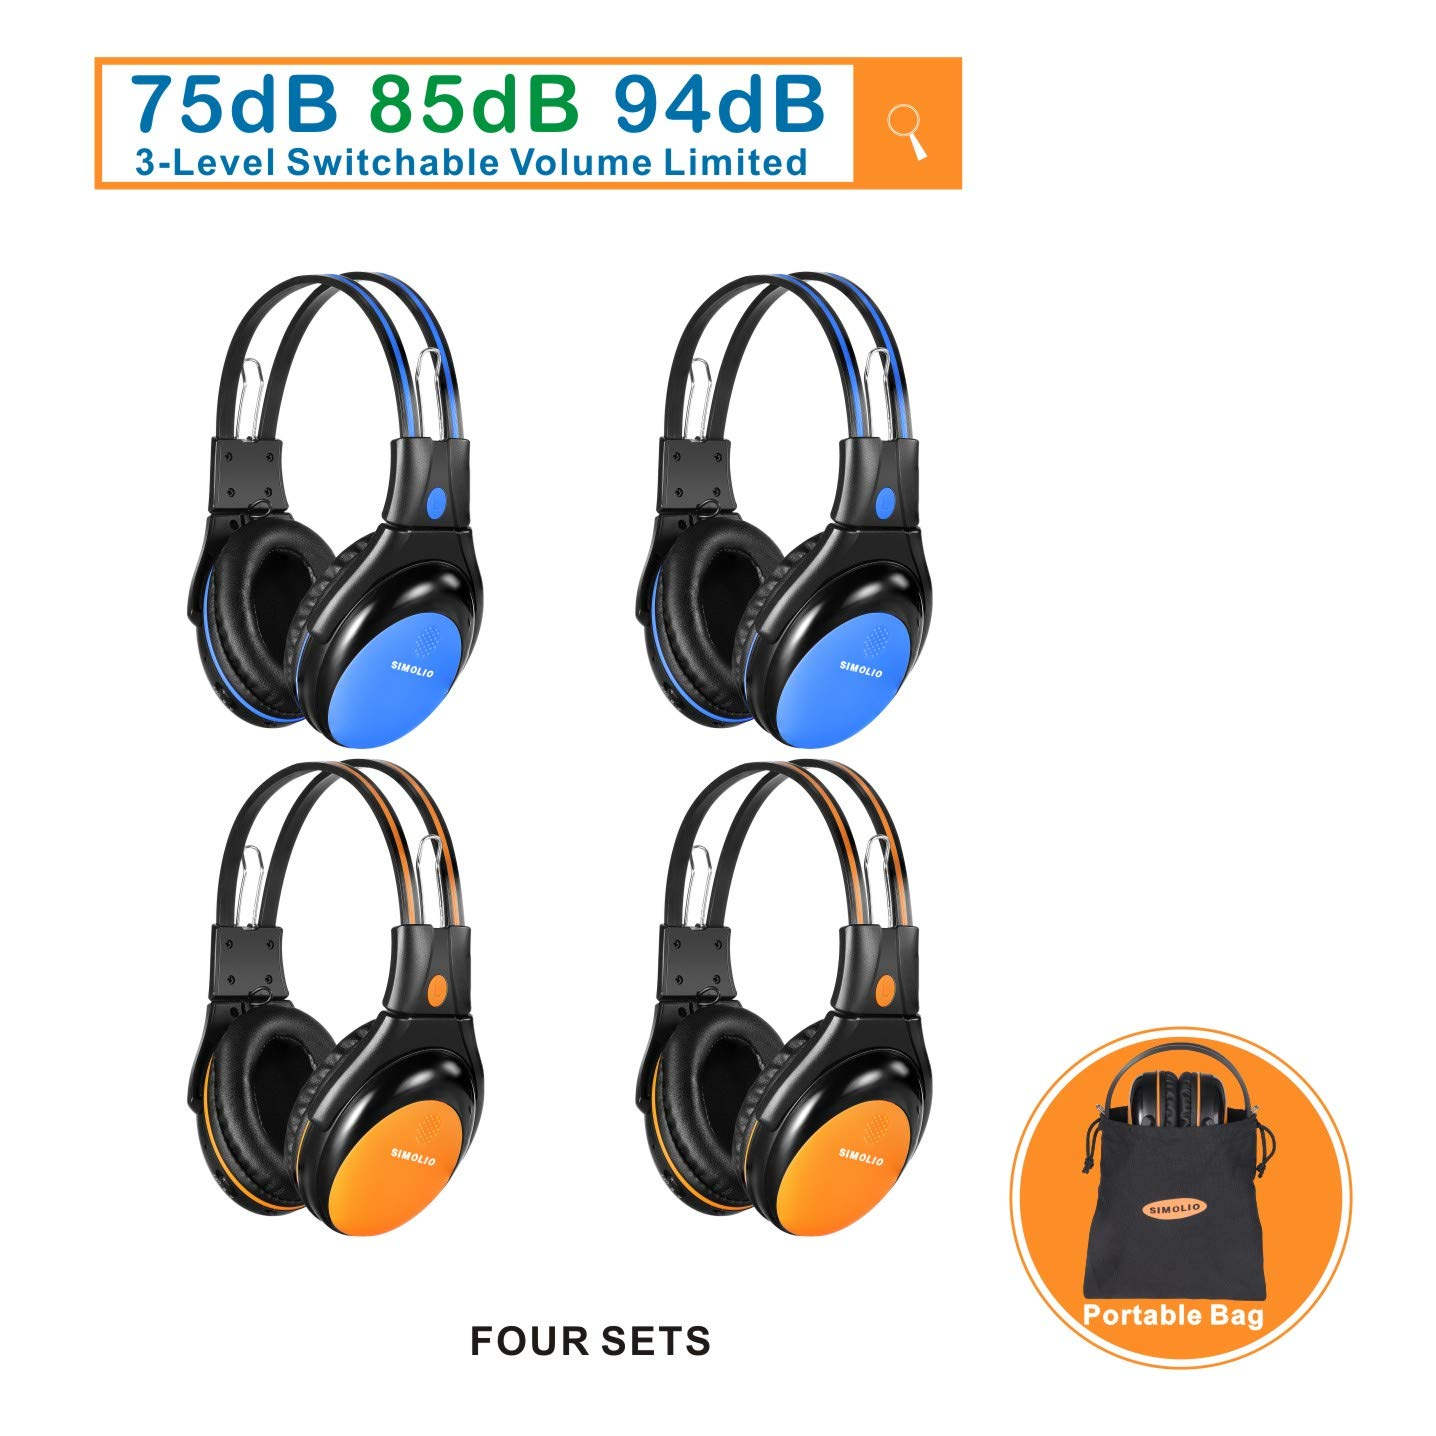 4 Pack of Car Kids Headphones with 3 Levels Volume Limited, Wireless DVD Headphones, 2 Channel IR Wireless Car Headphones, Infrared Wireless Headsets for Vehicle, Blue and Orange by SIMOLIO